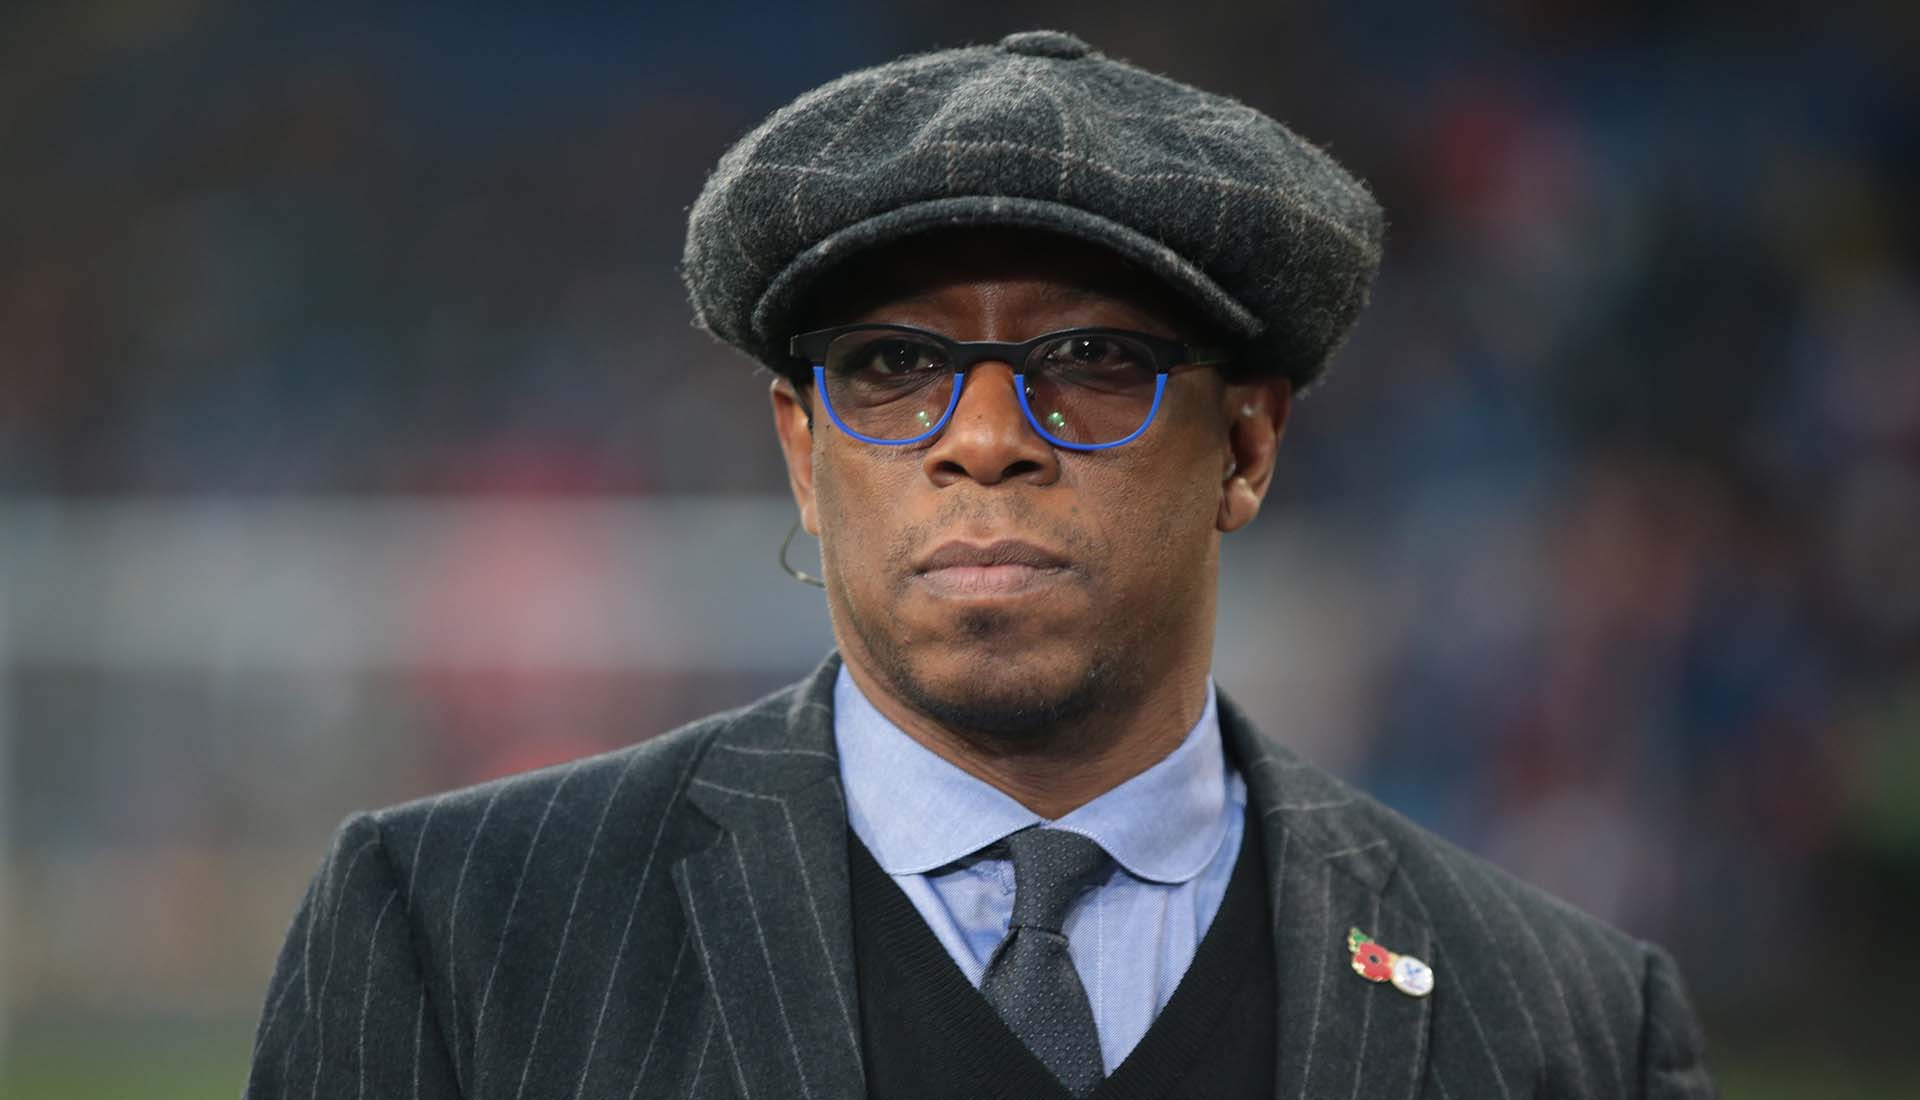 header ian wright dial up soccerbible_0000_GettyImages-619286308.jpg